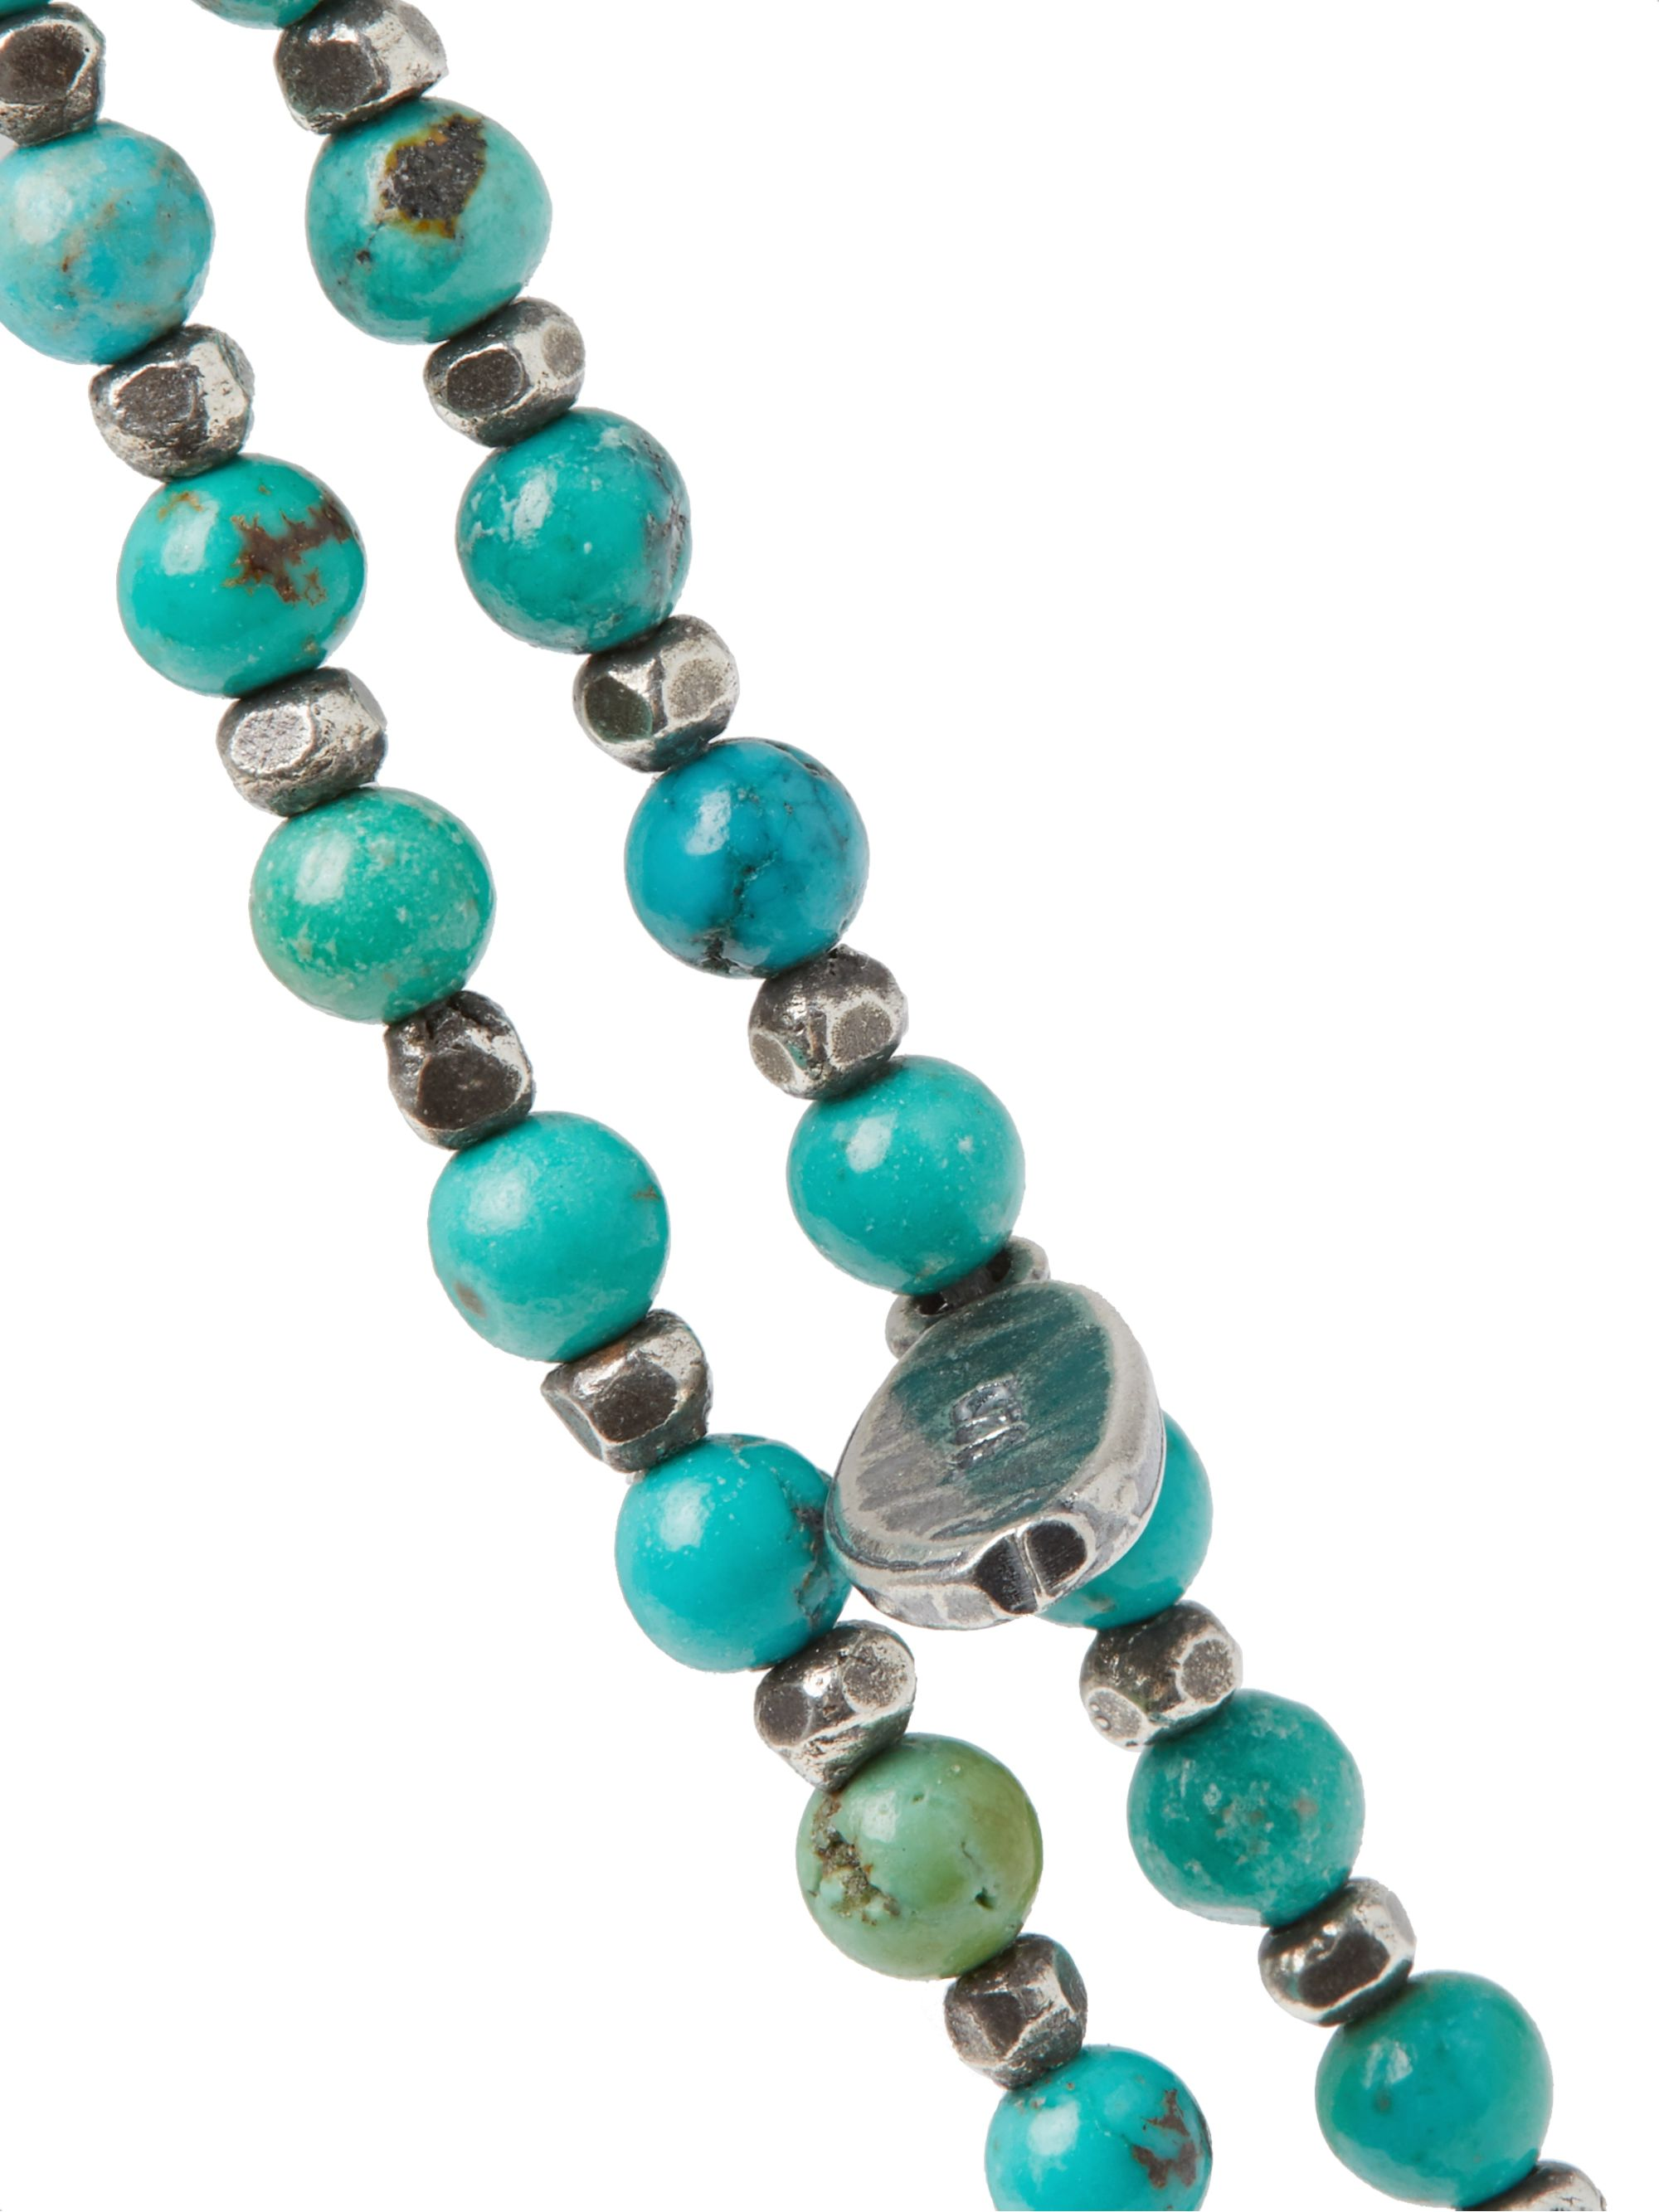 Turquoise Sterling Silver And Beaded Wrap Bracelet | M.cohen